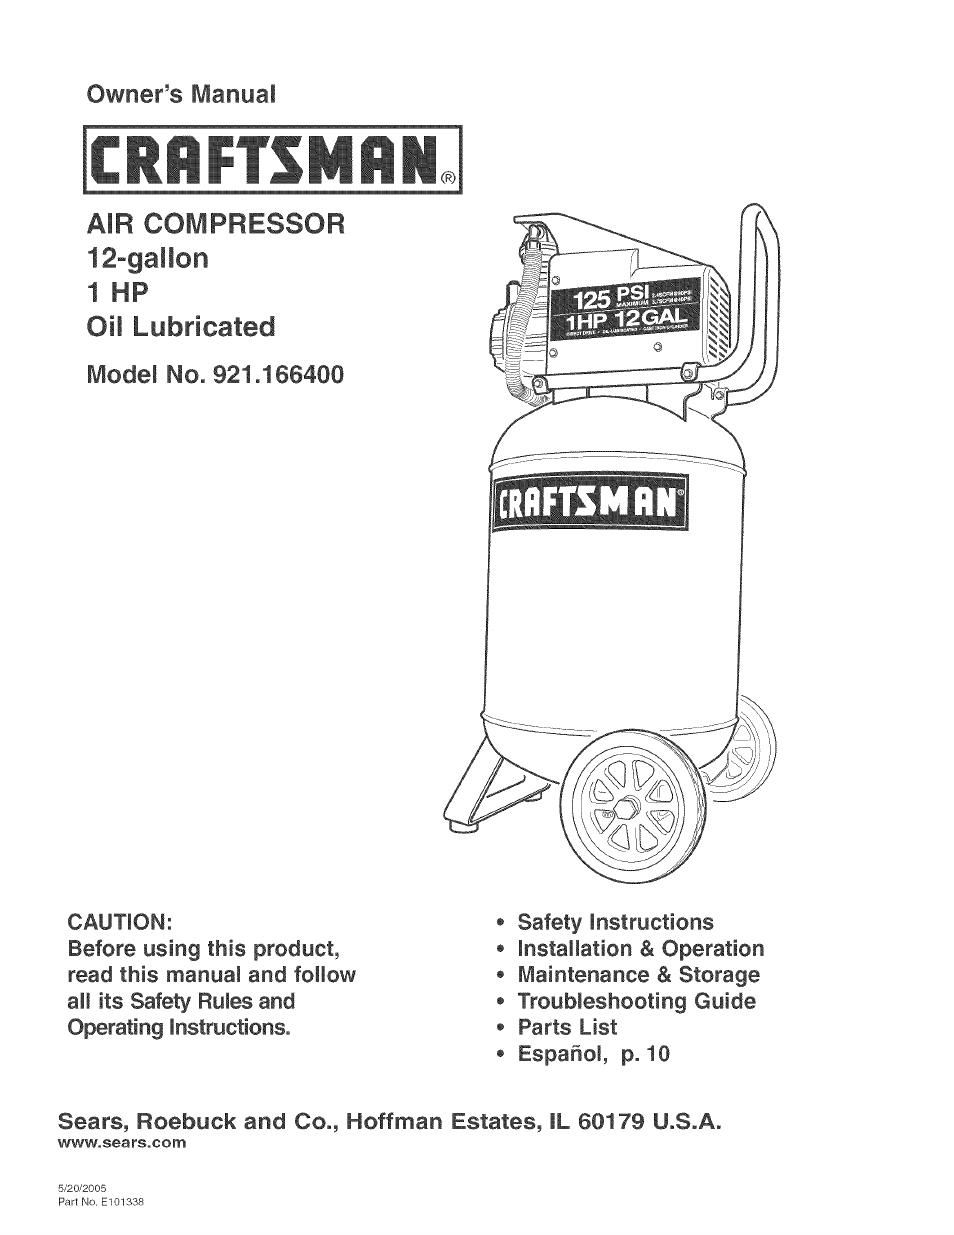 Craftsman Craftsman Permanently Lubricated Air Compressor Manual Guide